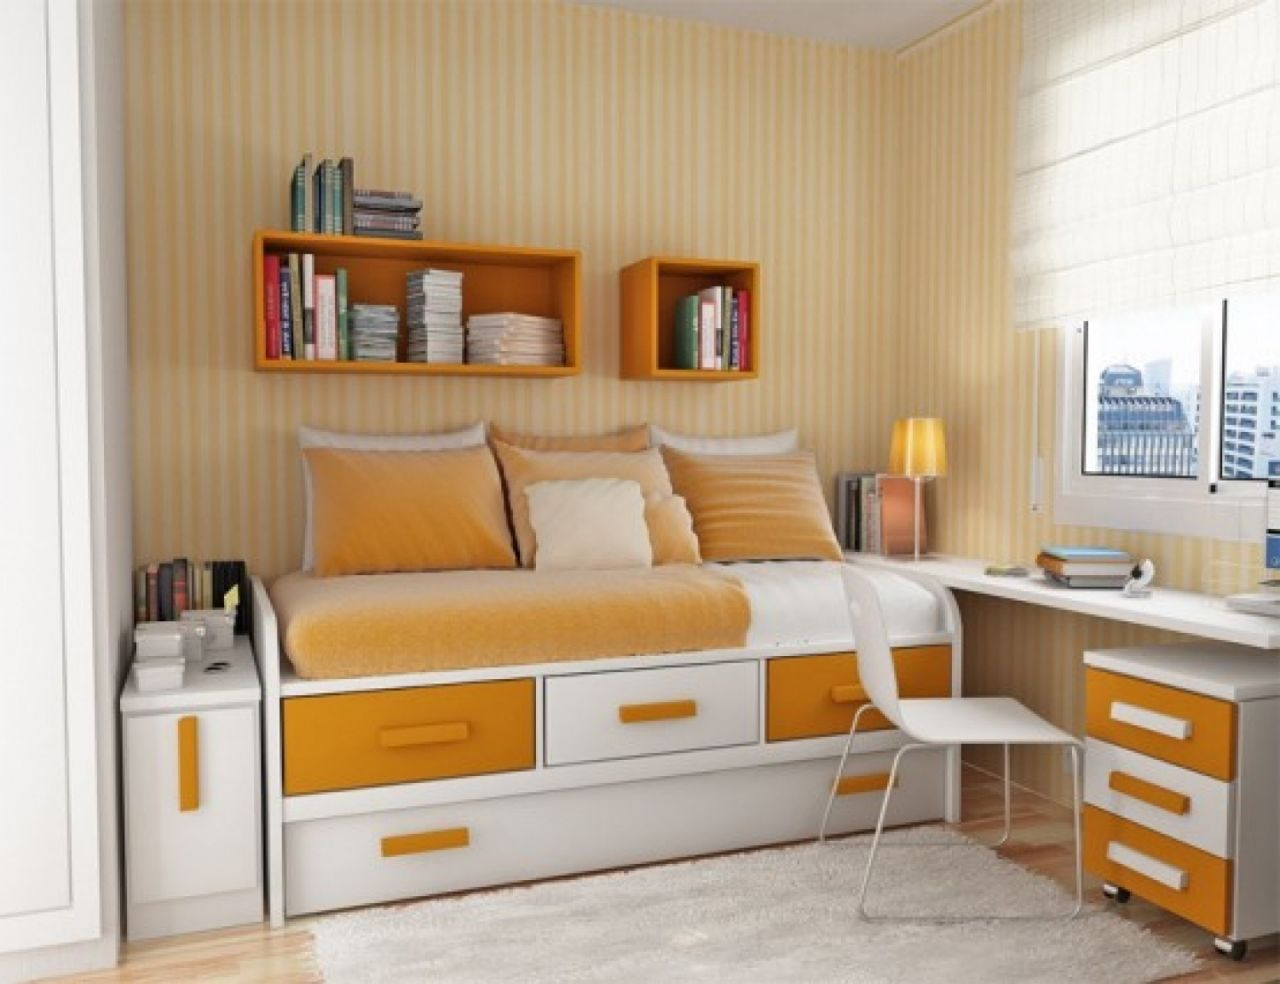 Cheap Childrens Bedroom Furniture Sets | Childrens Bedroom ...